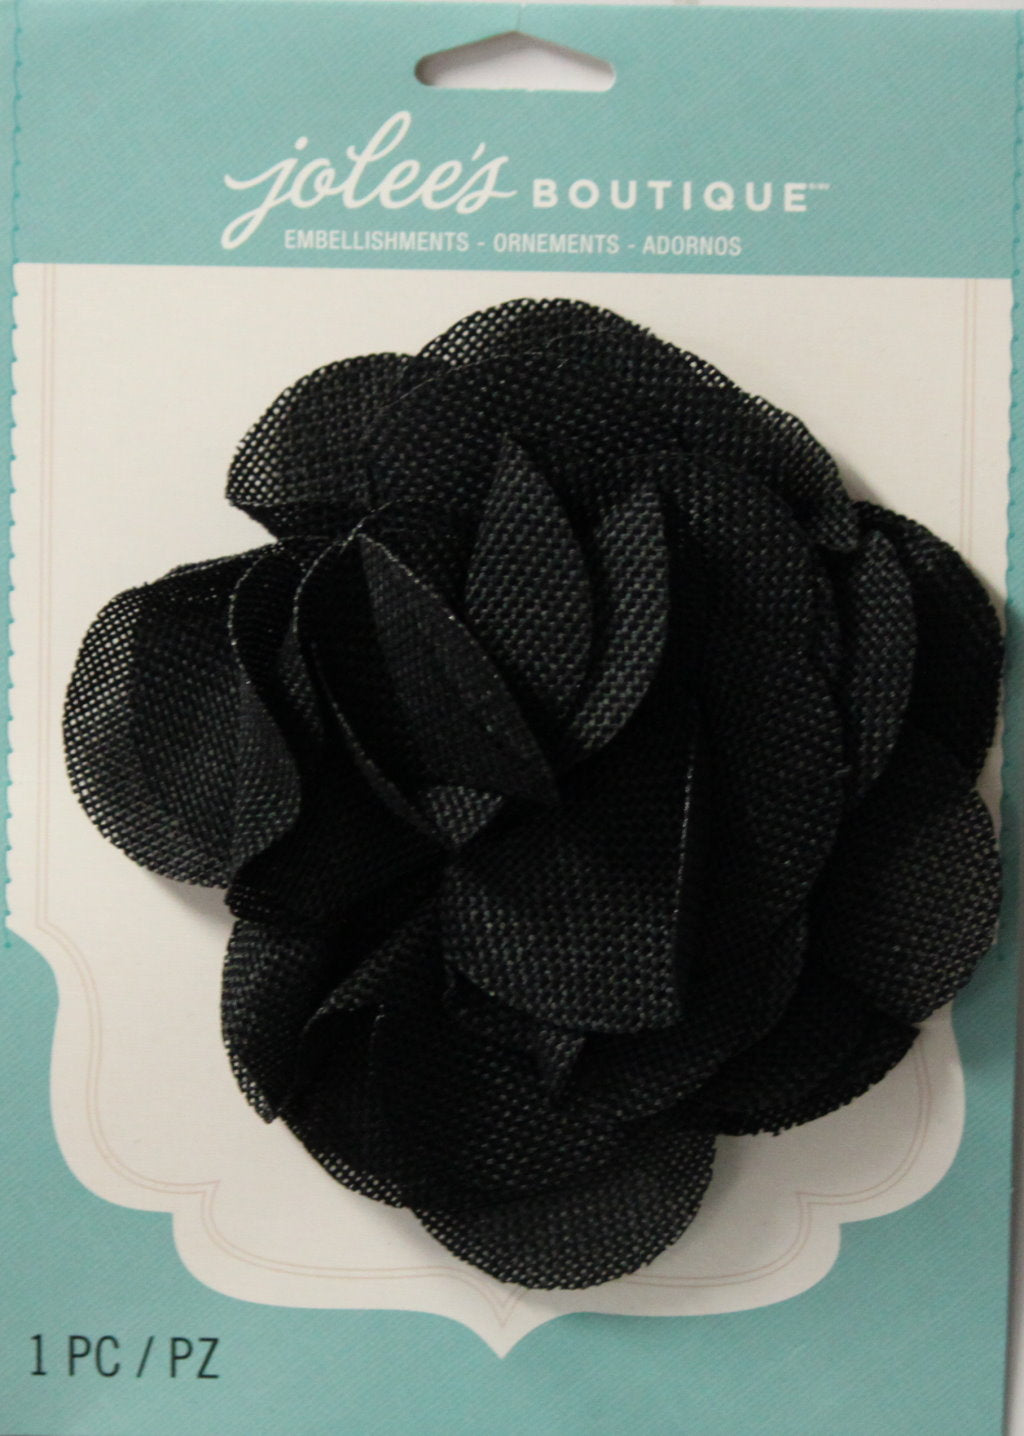 Jolee's Boutique Black Burlap Large Flower Embellishment Sticker